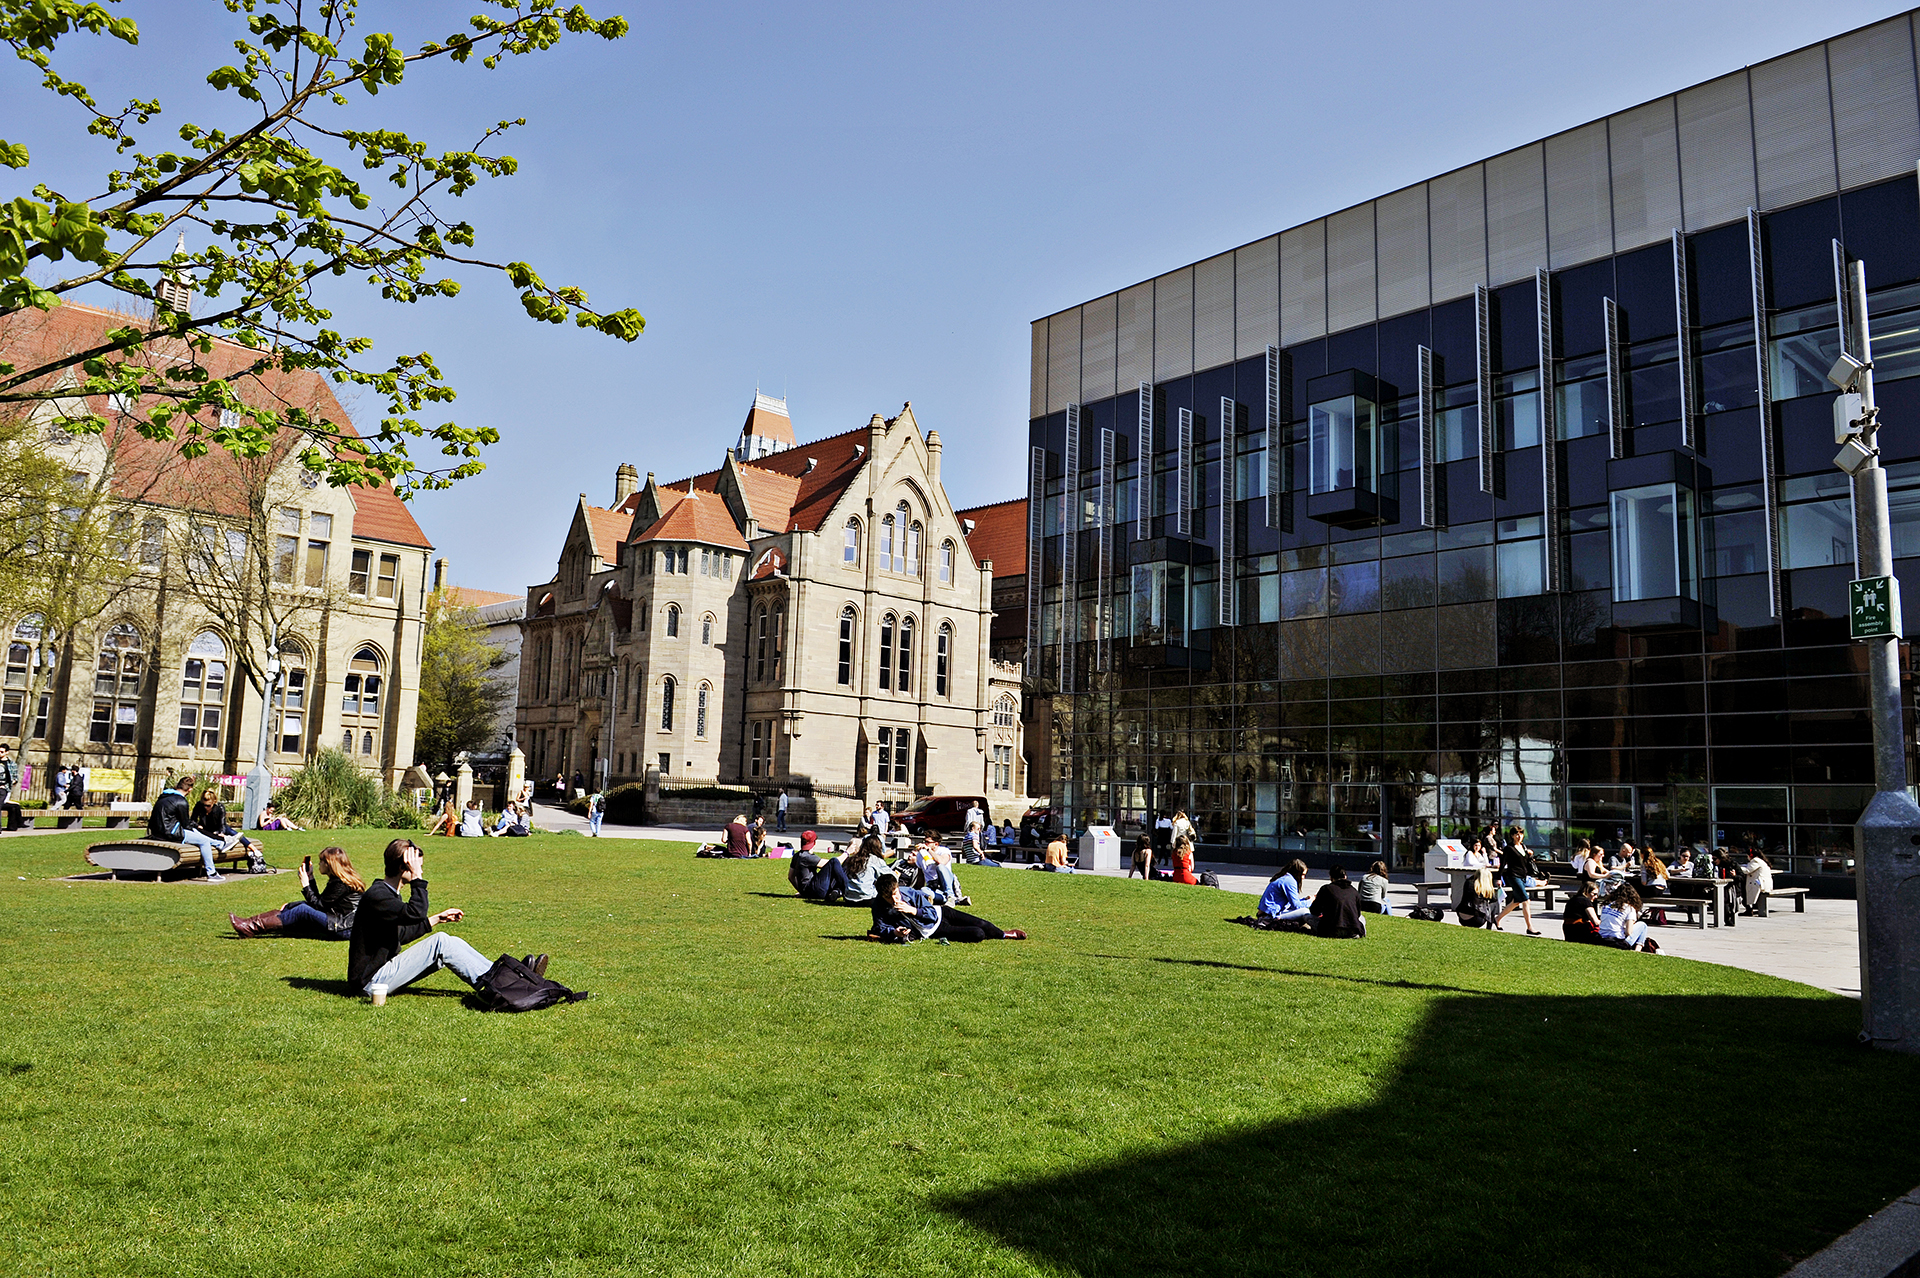 Students sitting outside of The University of Manchester